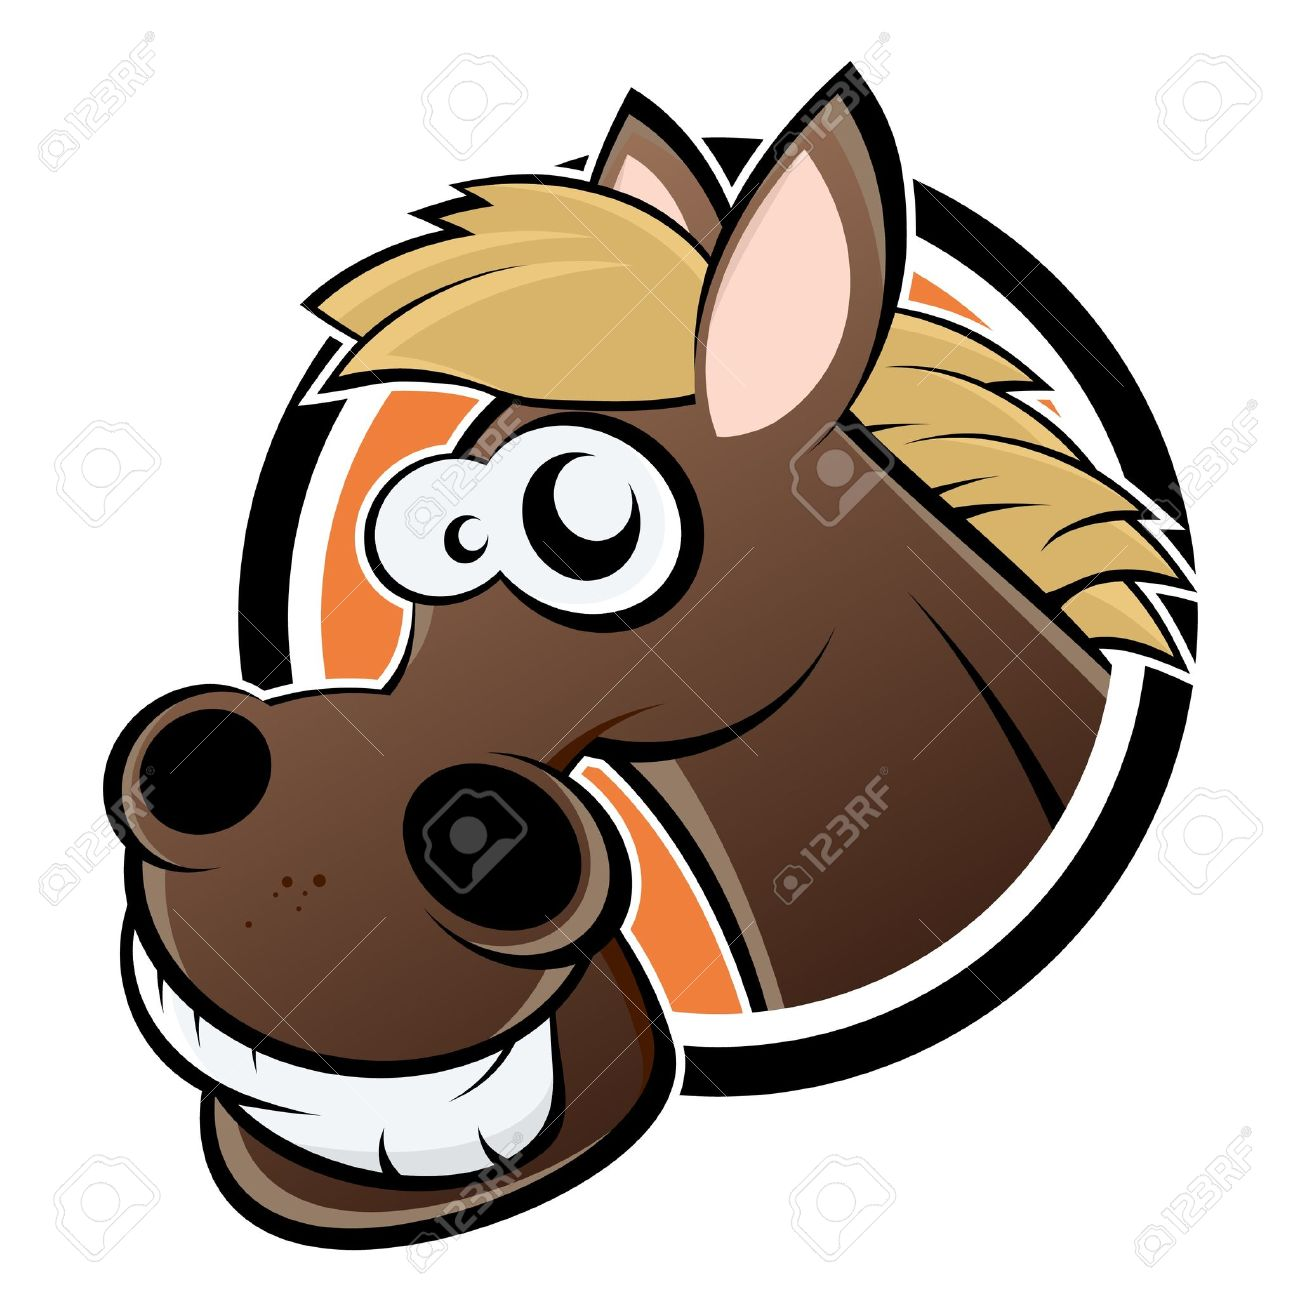 Cavallo clipart #3, Download drawings